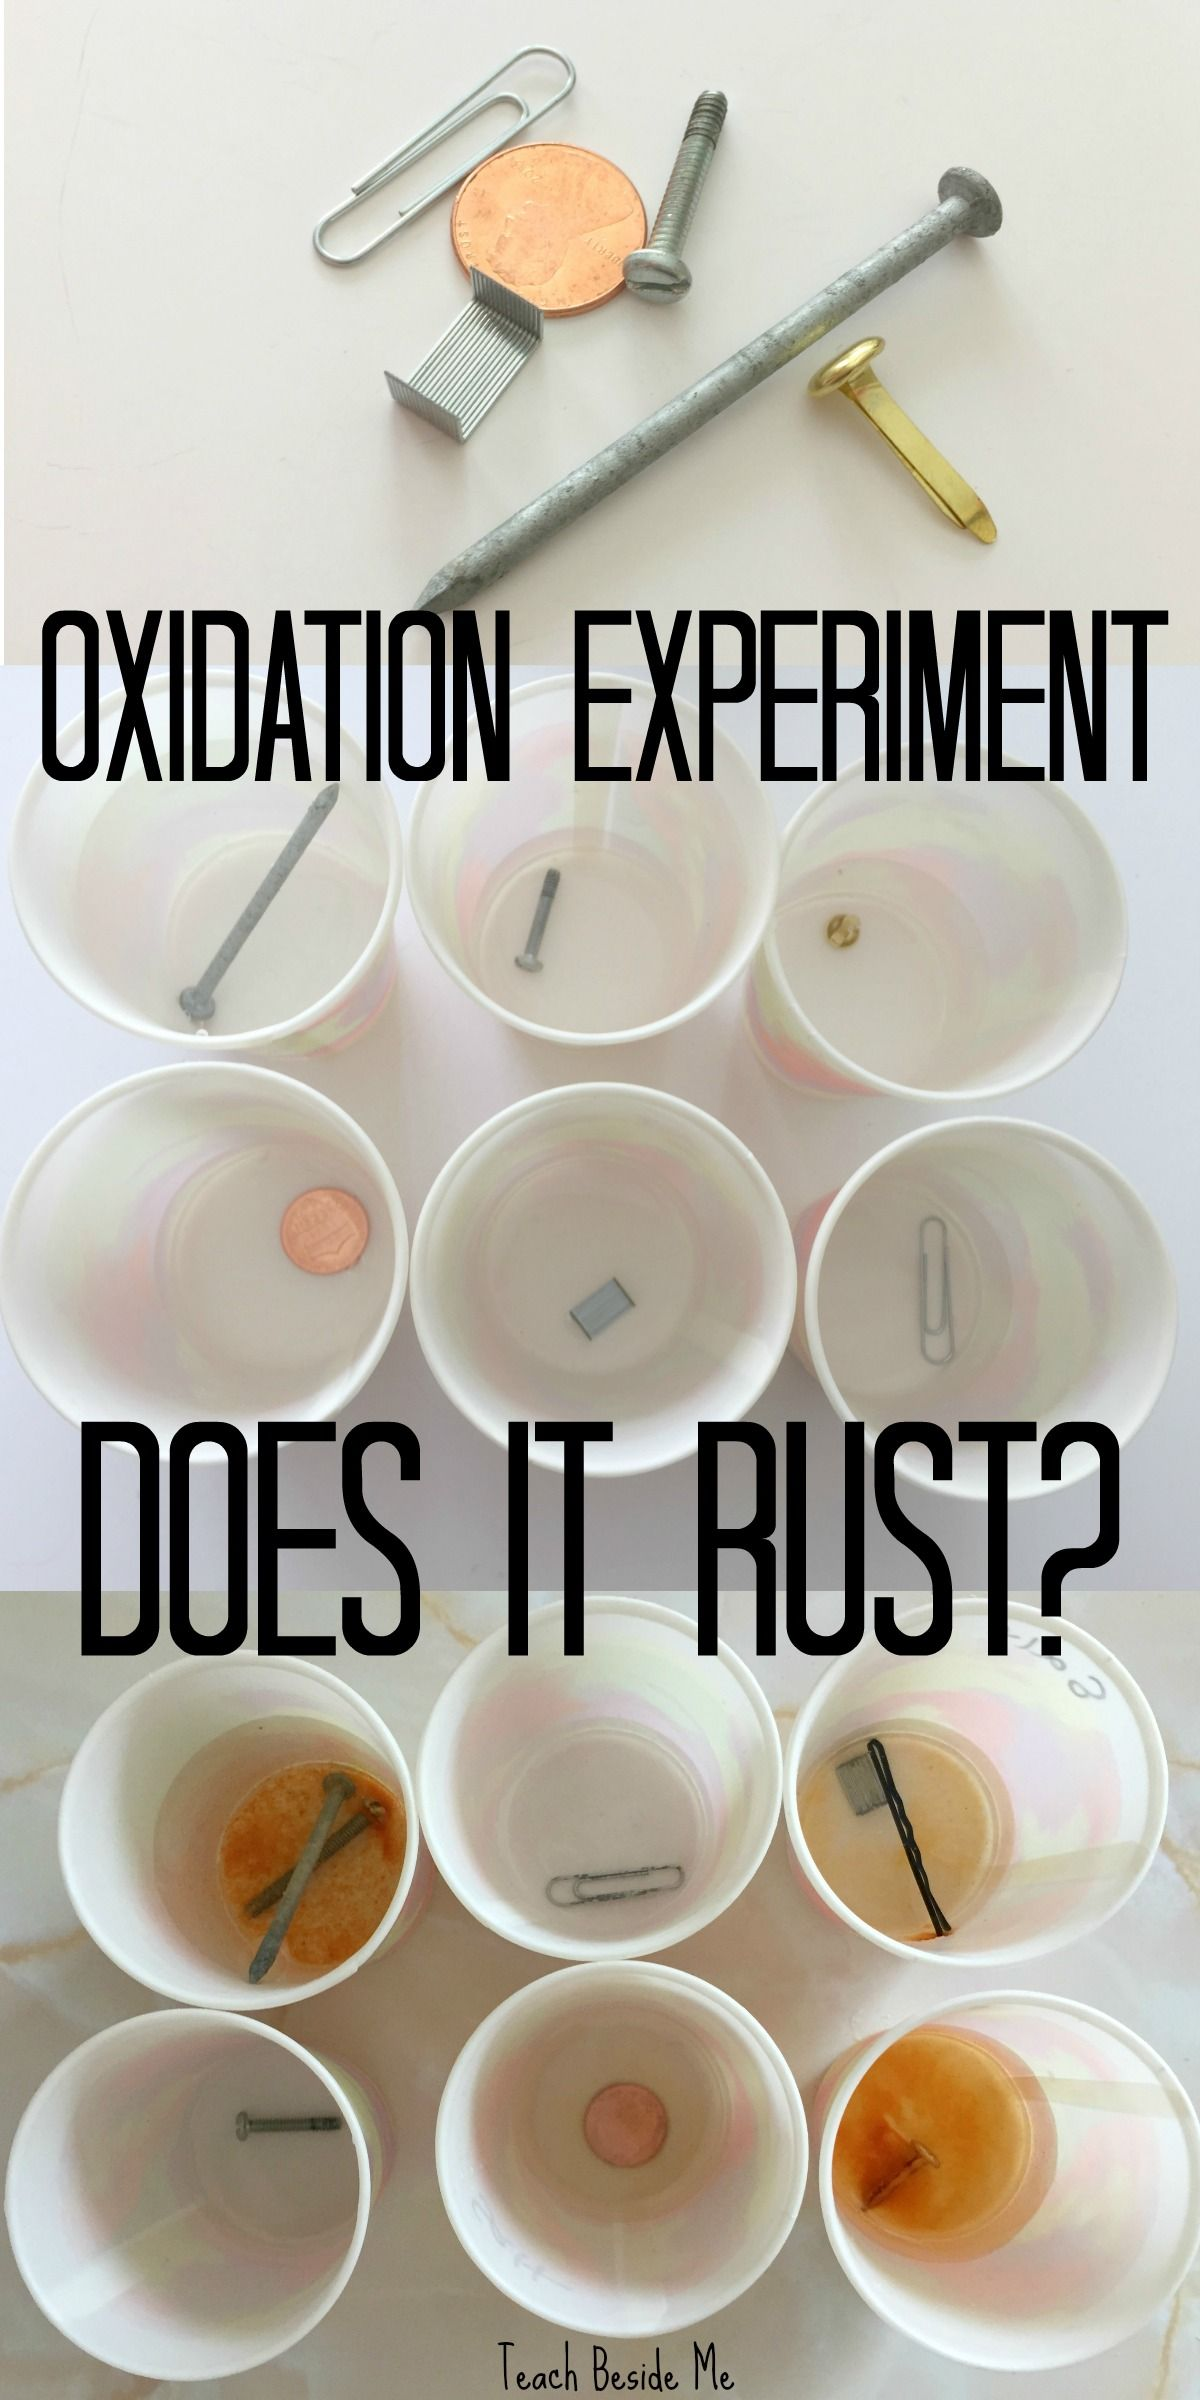 Oxidation Experiment Does It Rust